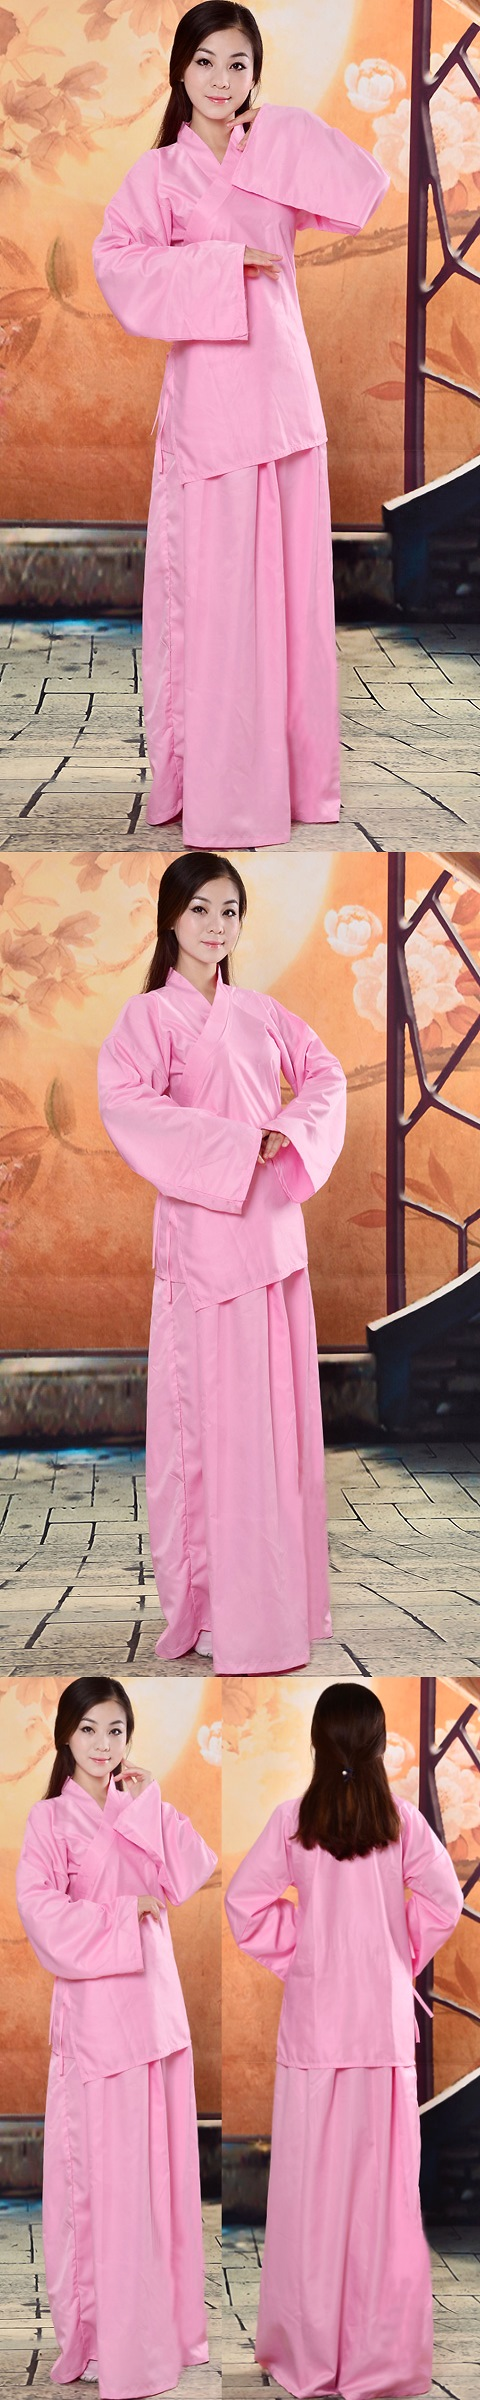 Hanfu Underwear of Blouse and Skirt (RM)